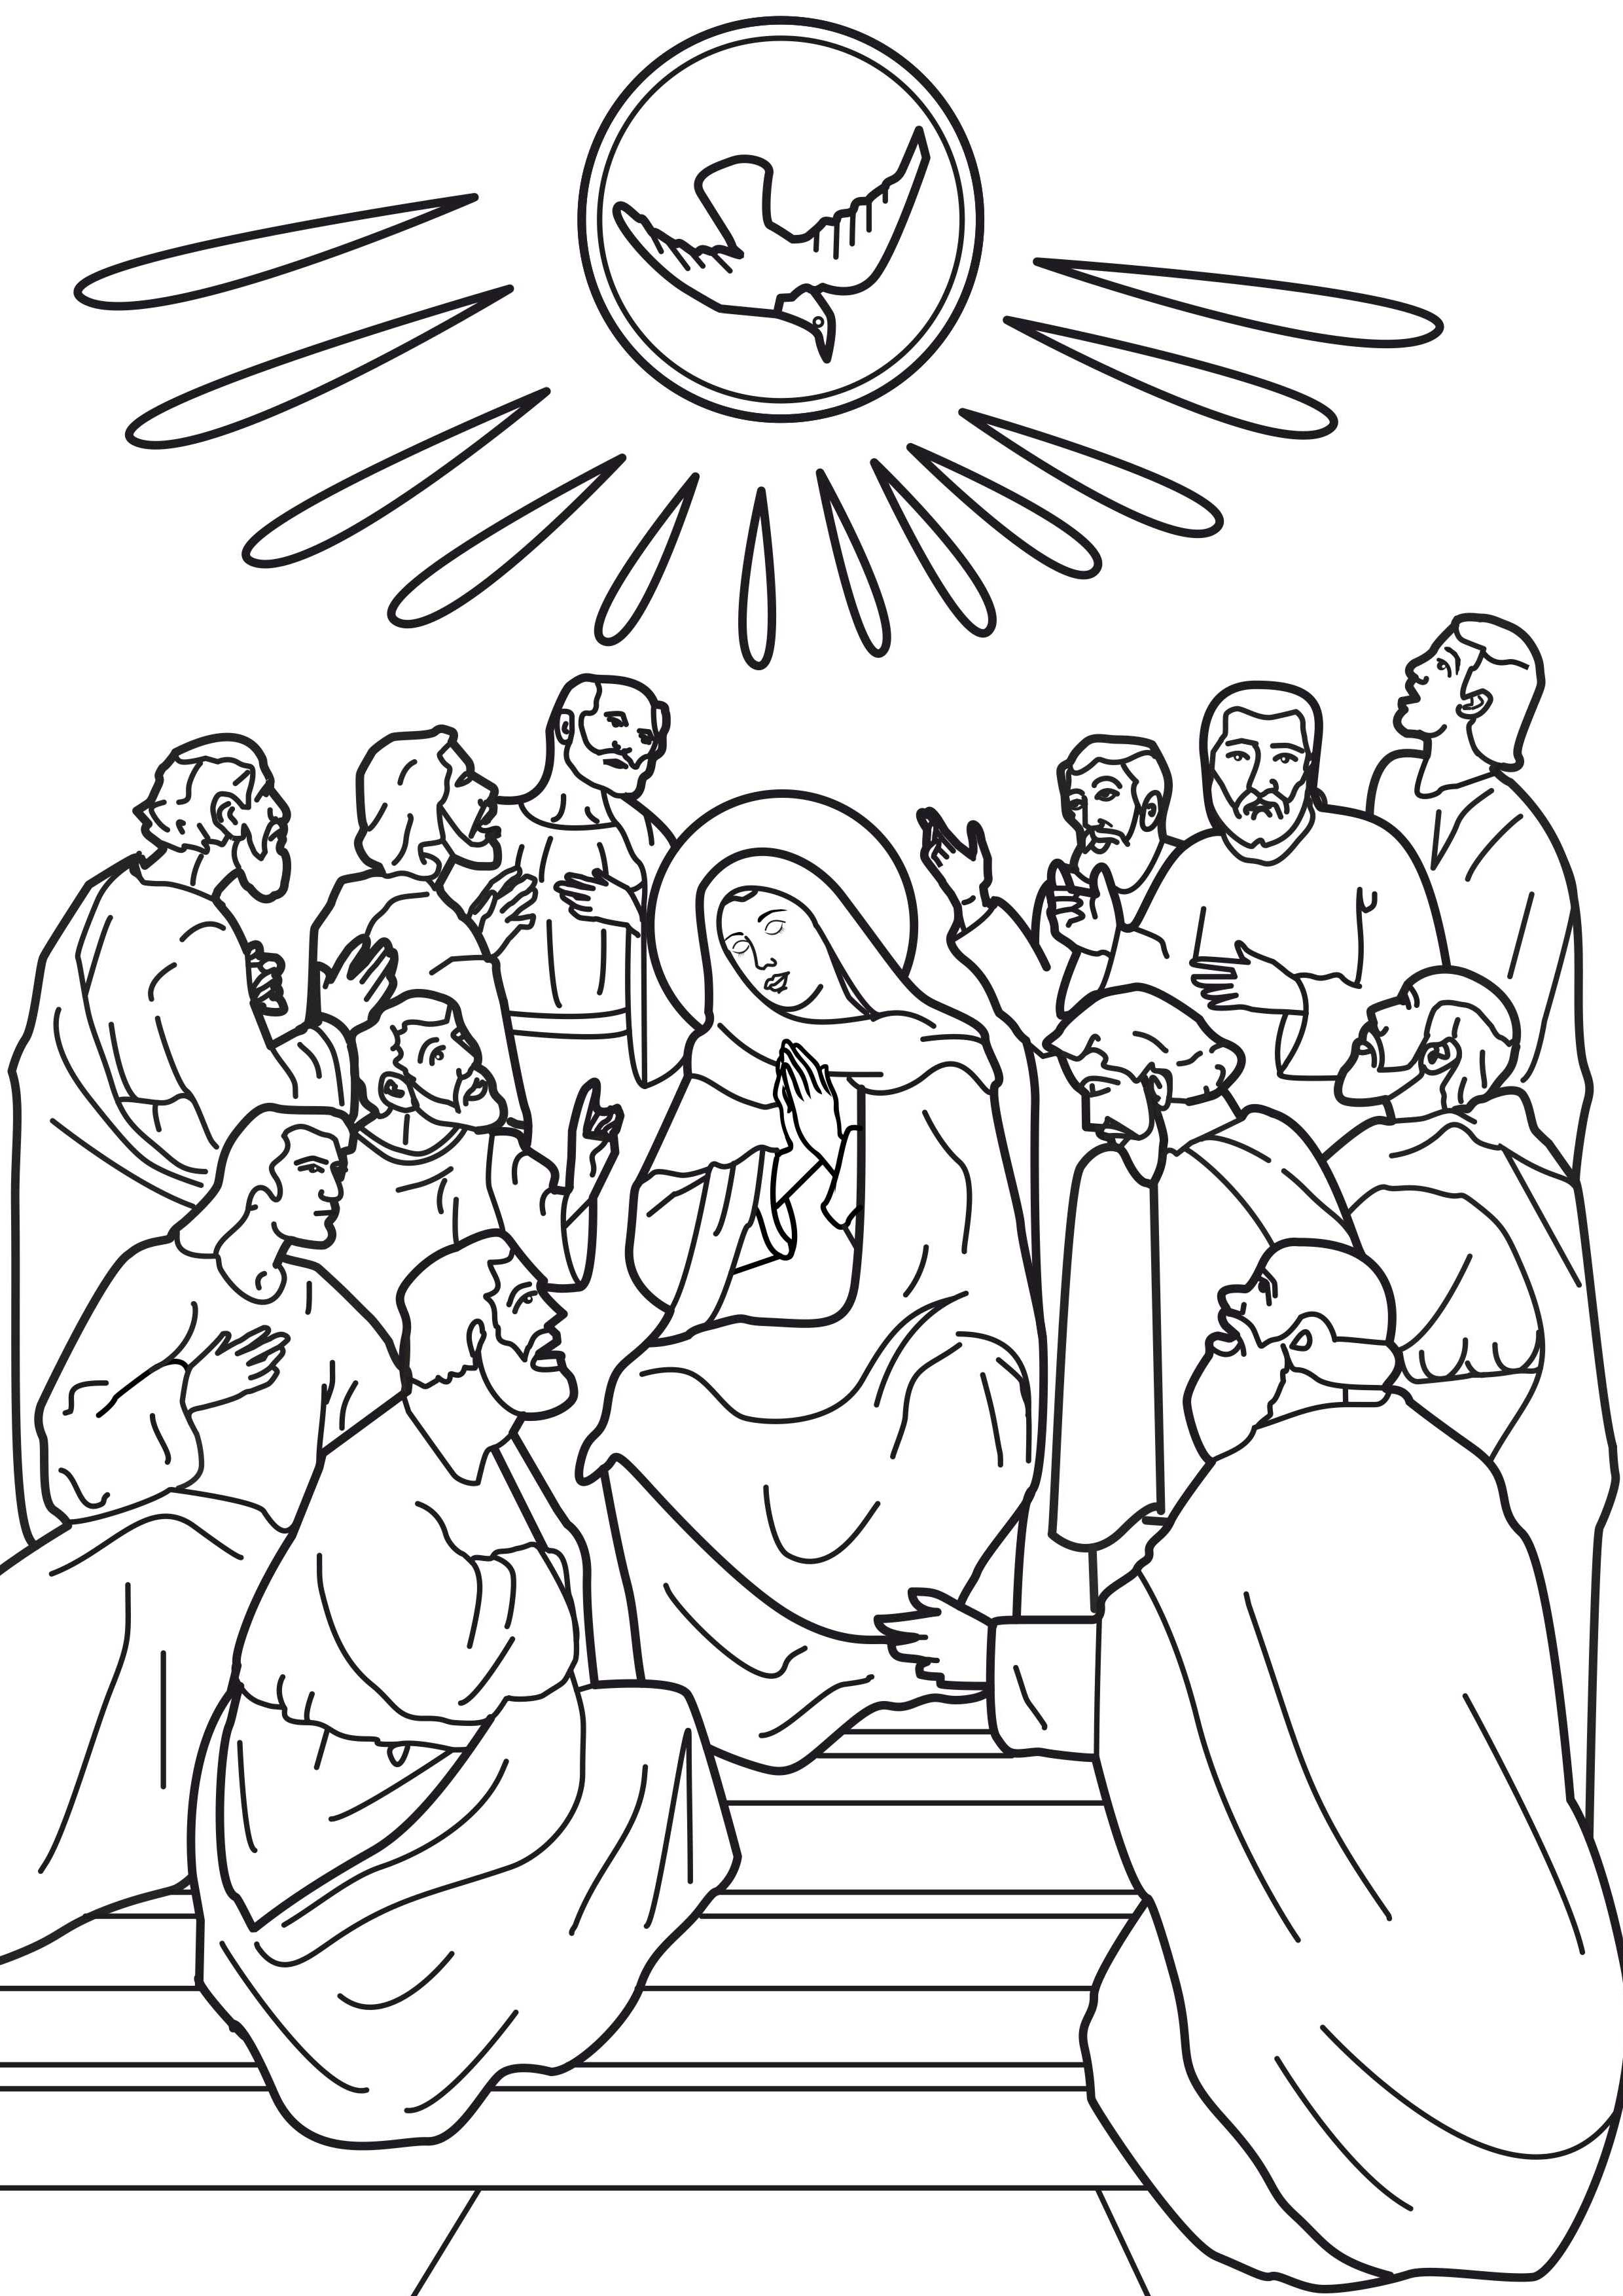 Image: Coloring the Holy Spirit Pentecost صورة تلوين يوم